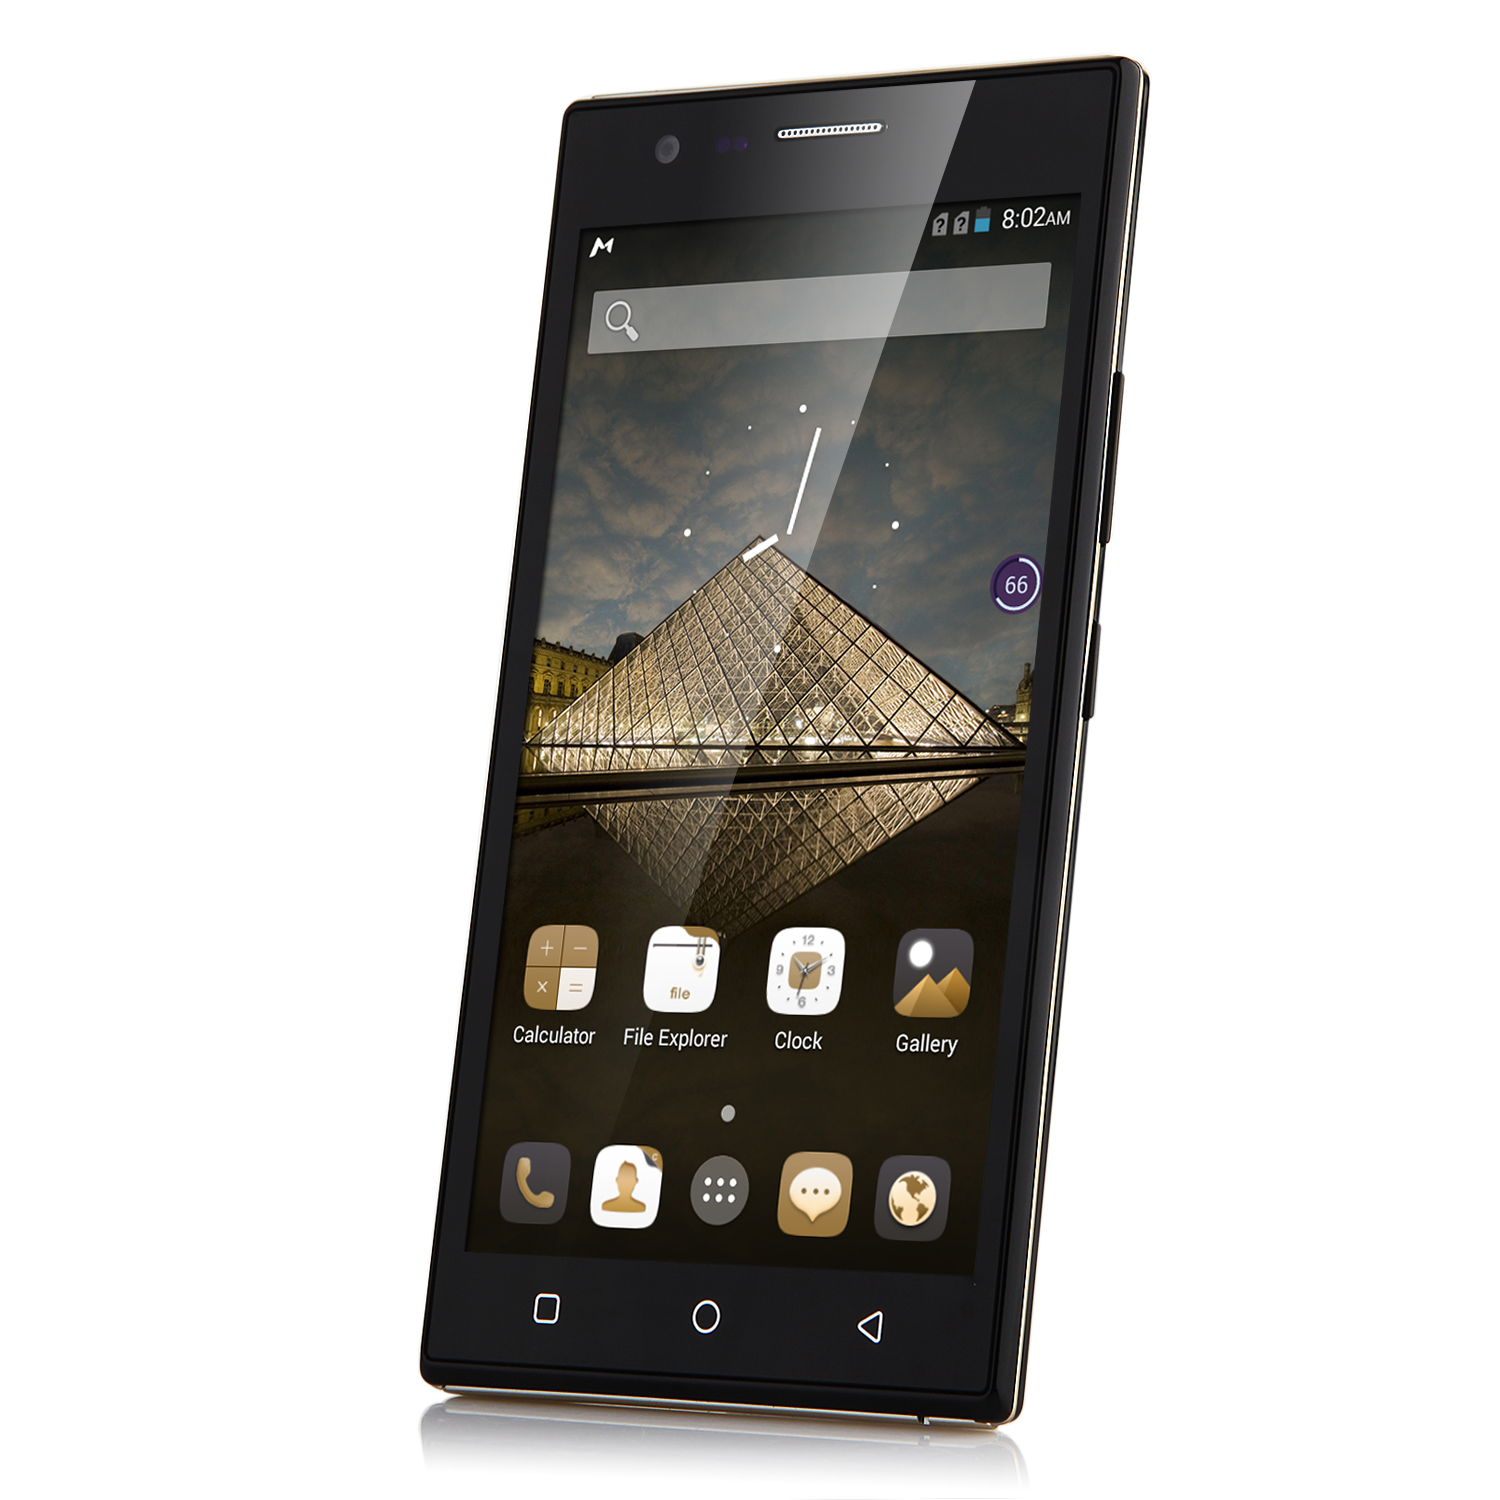 Tengda P7 Smartphone 5.0 Inch QHD Screen Quad Core Android 4.4 3G GPS Black